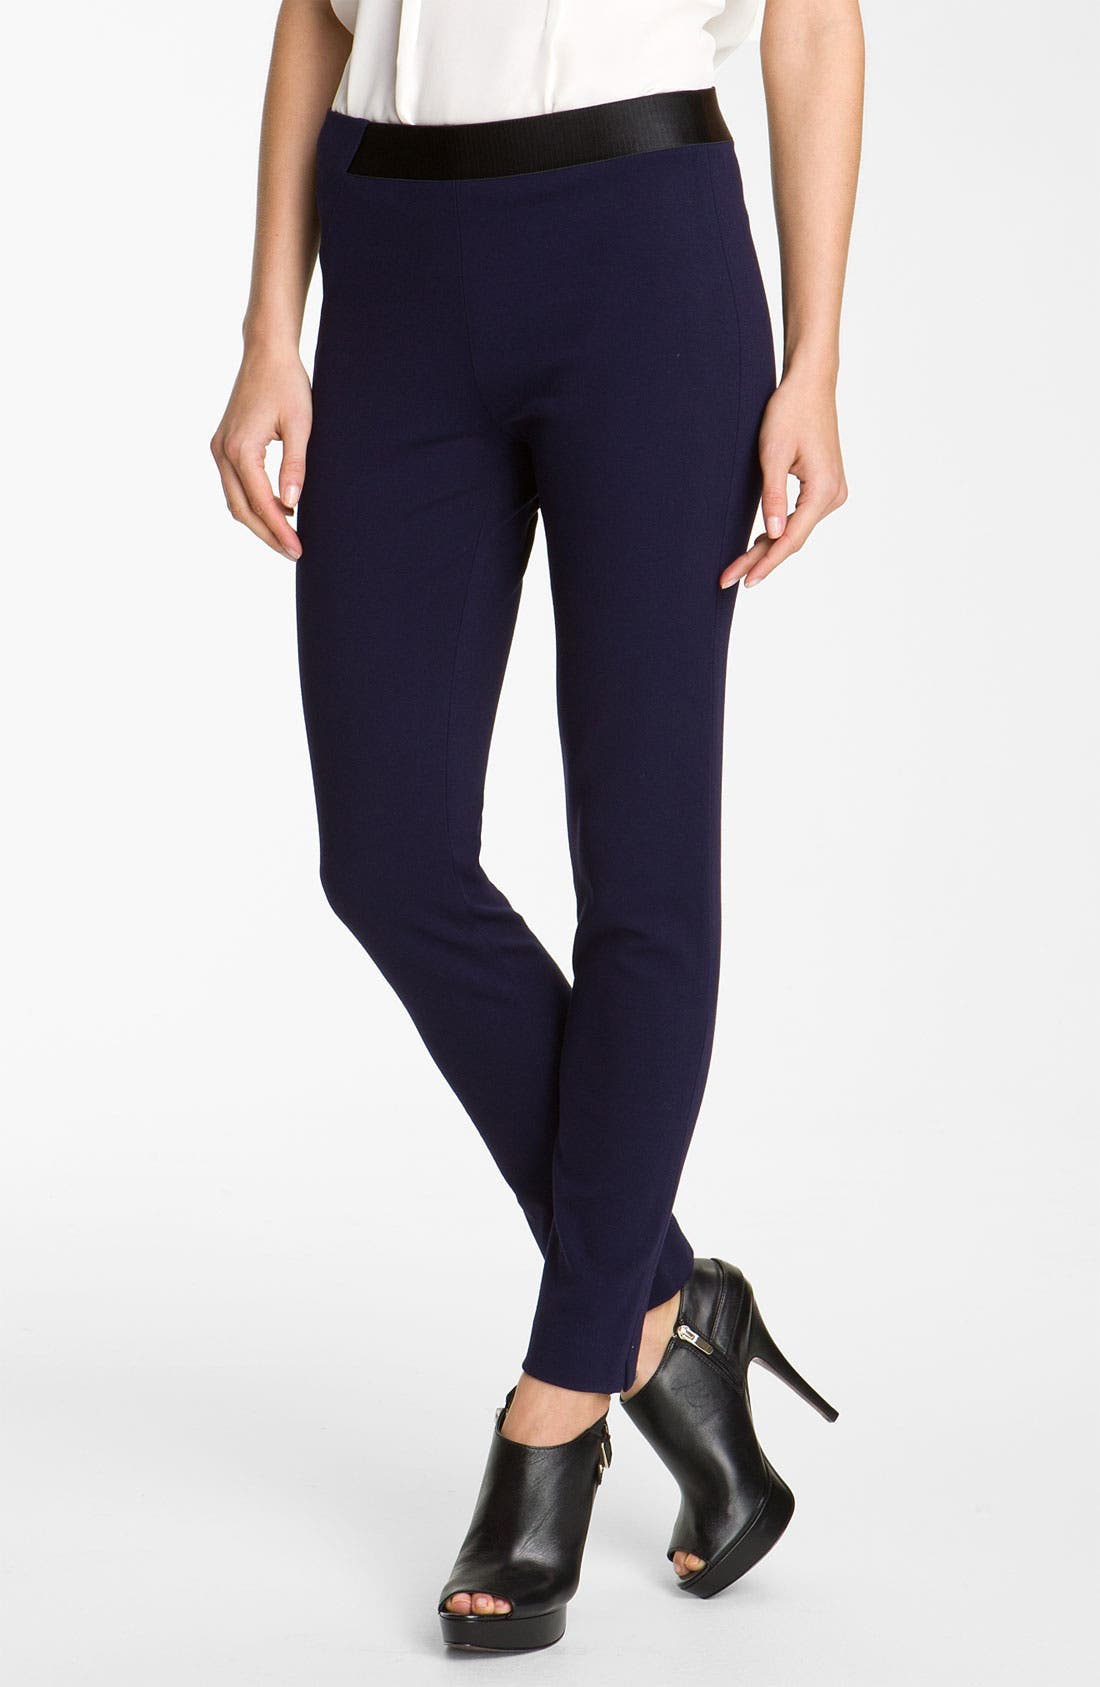 Alternate Image 1 Selected - Elie Tahari Exclusive for Nordstrom 'Jolene' Skinny Pants